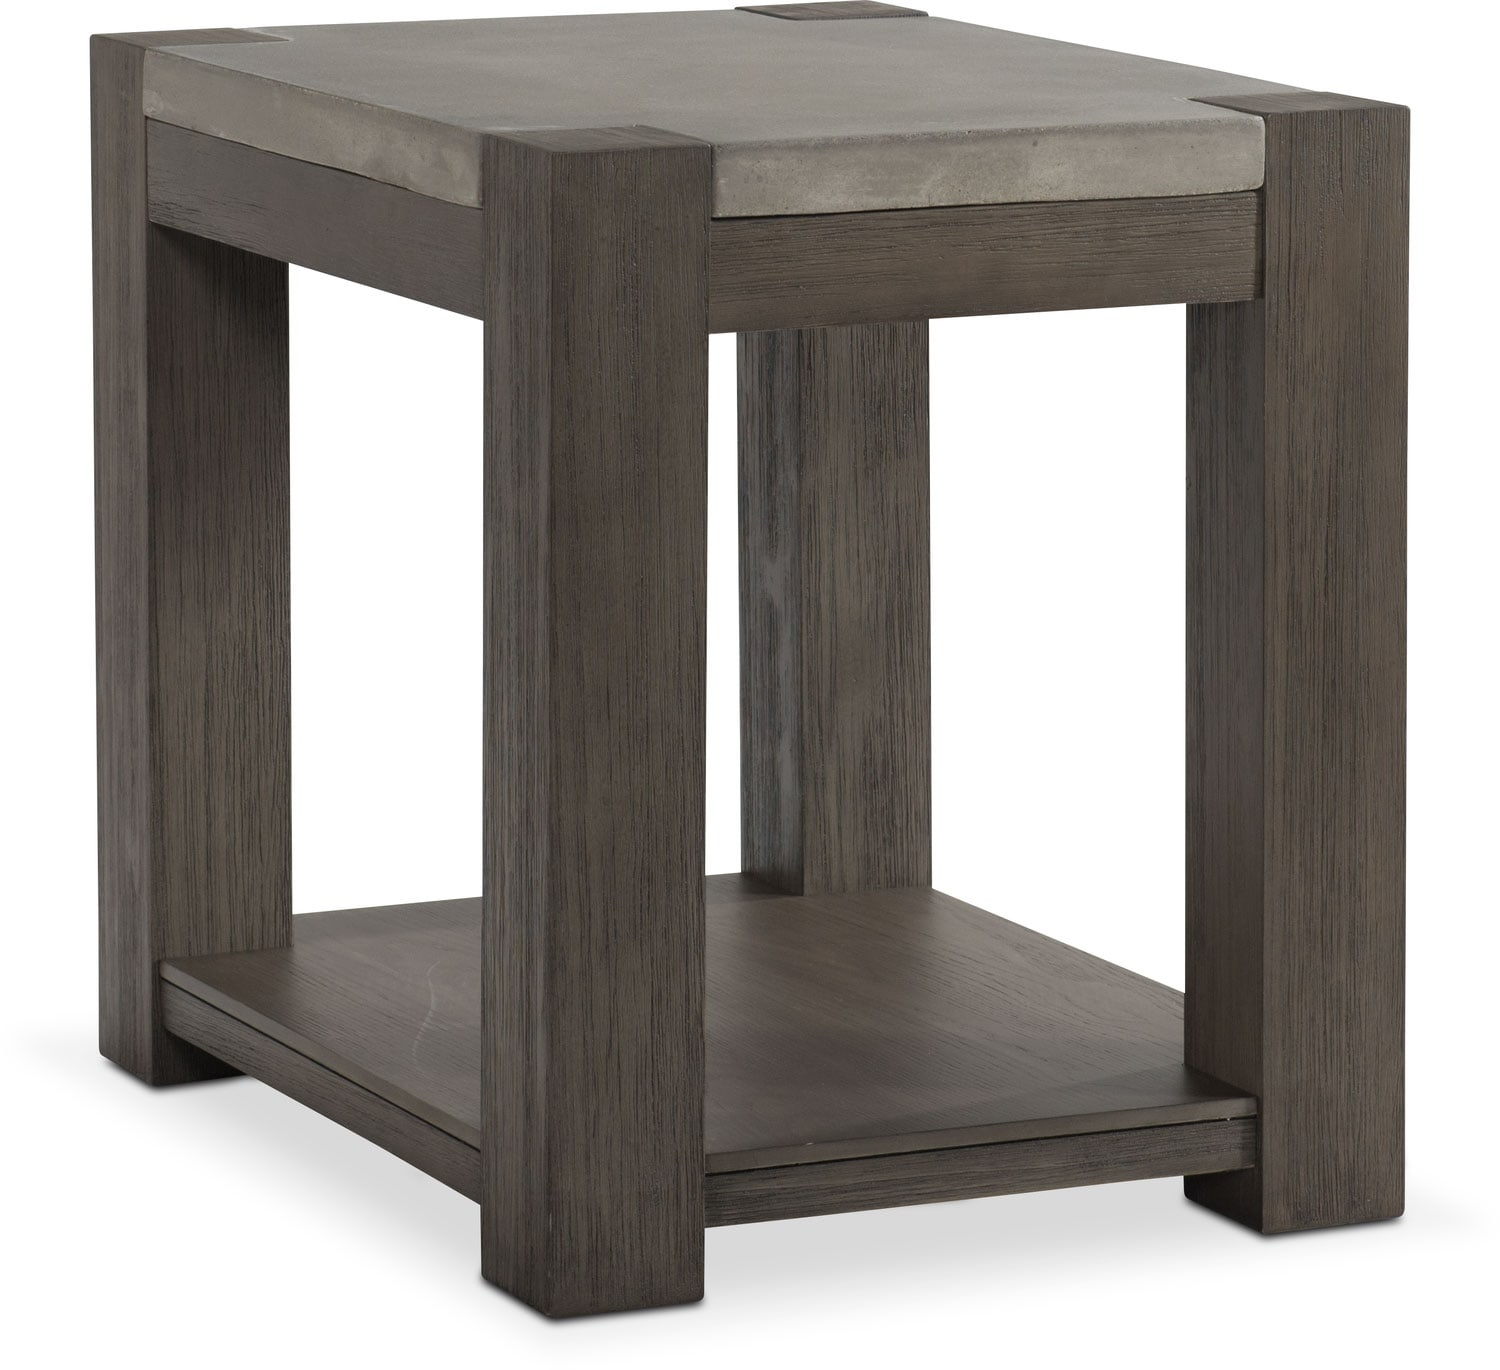 Kellen Chairside Table   Gray